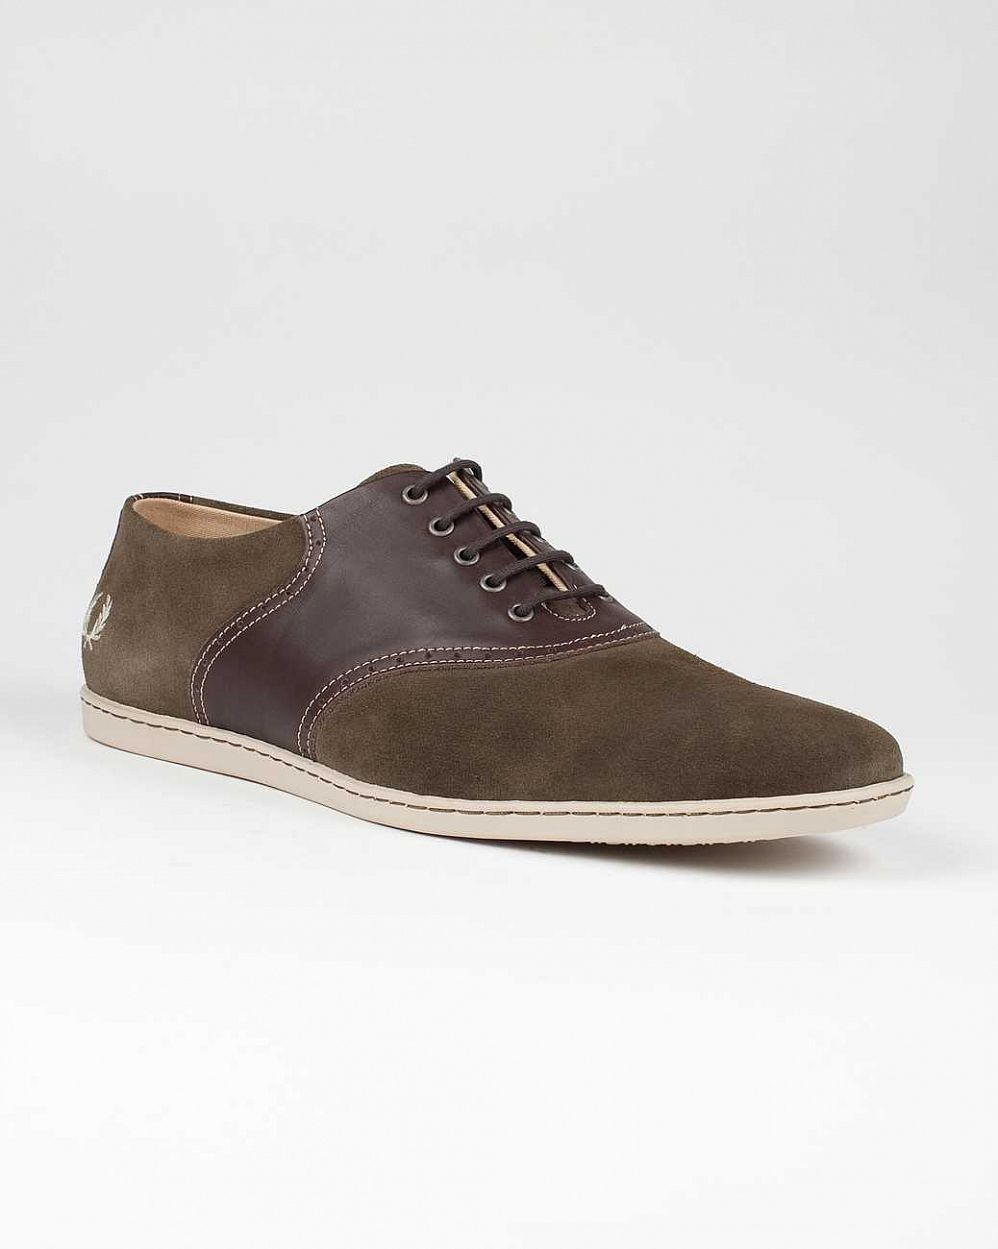 купить Кеды Fred Perry Rufus Suede Leather Chocolate в Москве